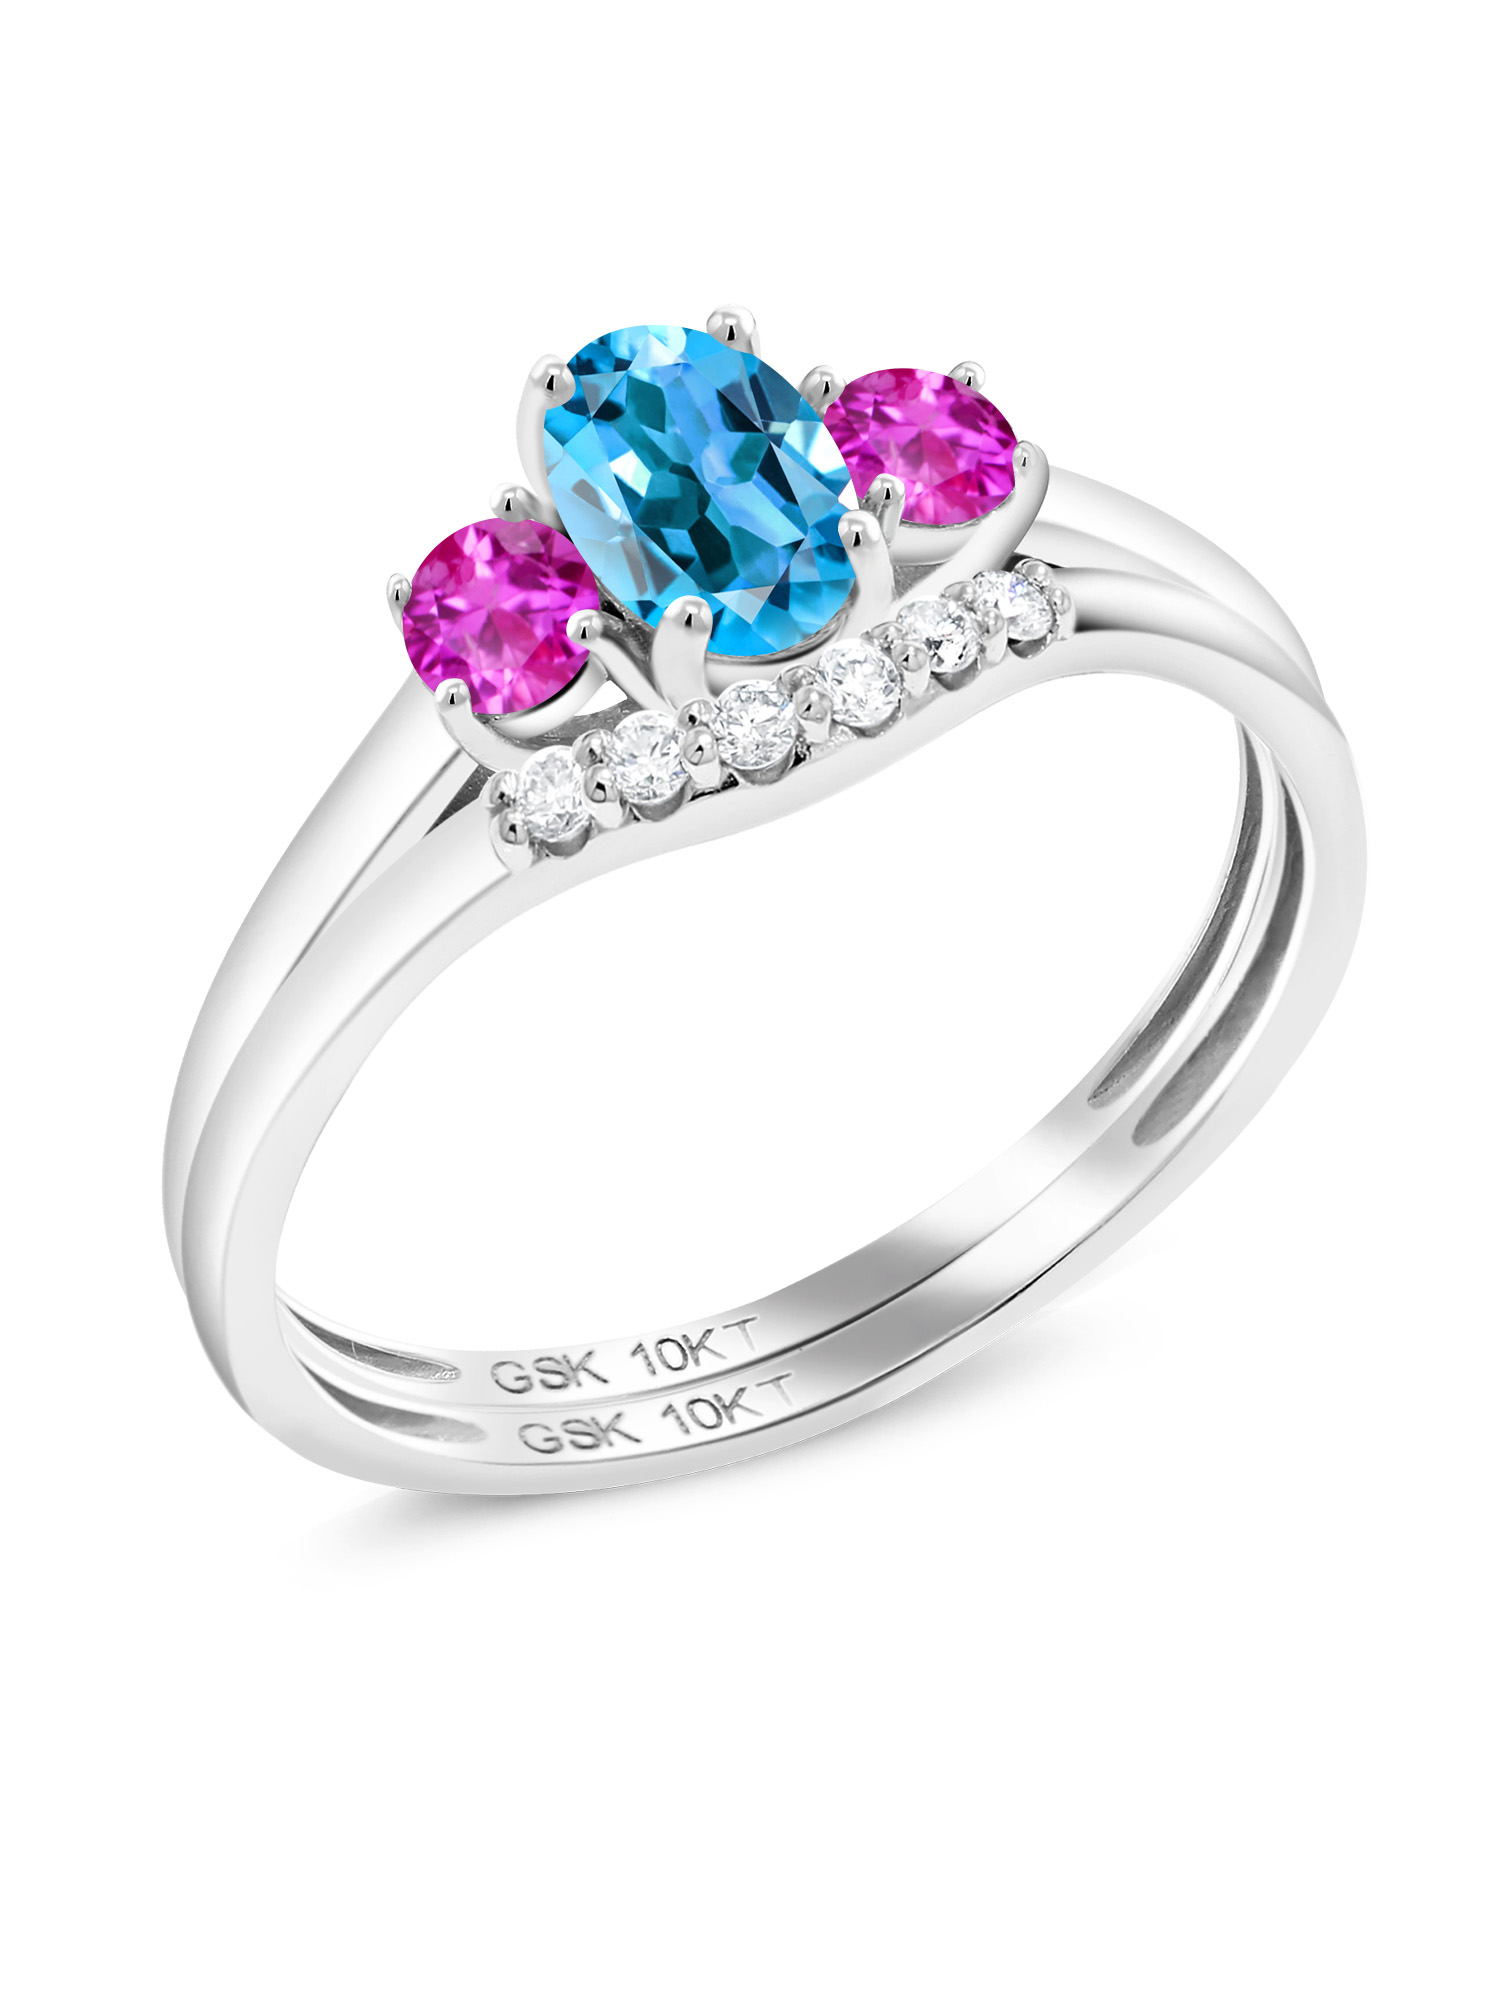 0.82 Ct Oval Swiss Blue Topaz Pink Sapphire 10K White Gold Lab Grown Diamond Ring by